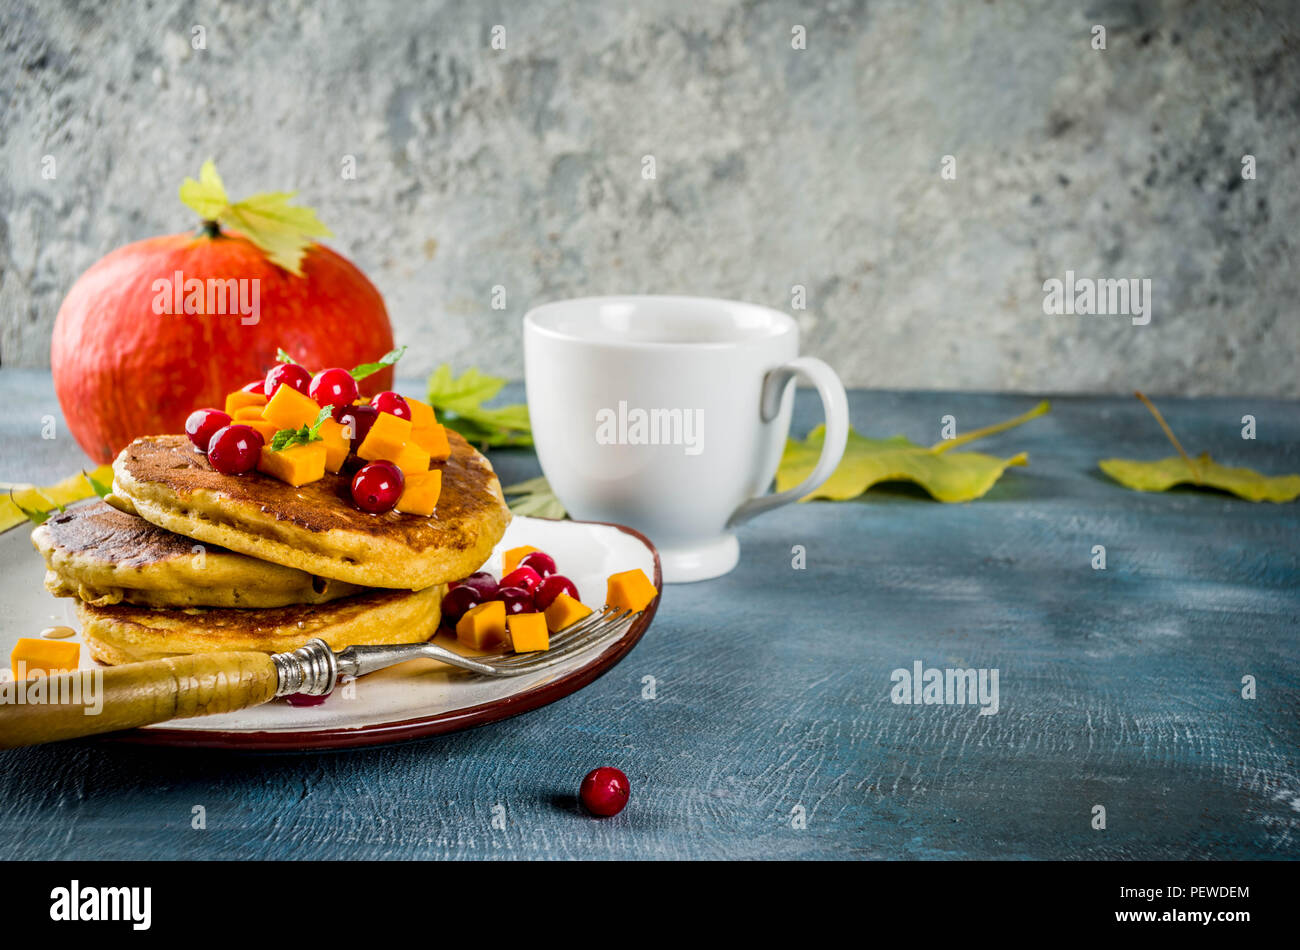 Autumnal breakfast idea, pumpkin pancakes, with slices of pumpkin, maple syrup or honey, cranberry, on a blue concrete background, space for text Stock Photo